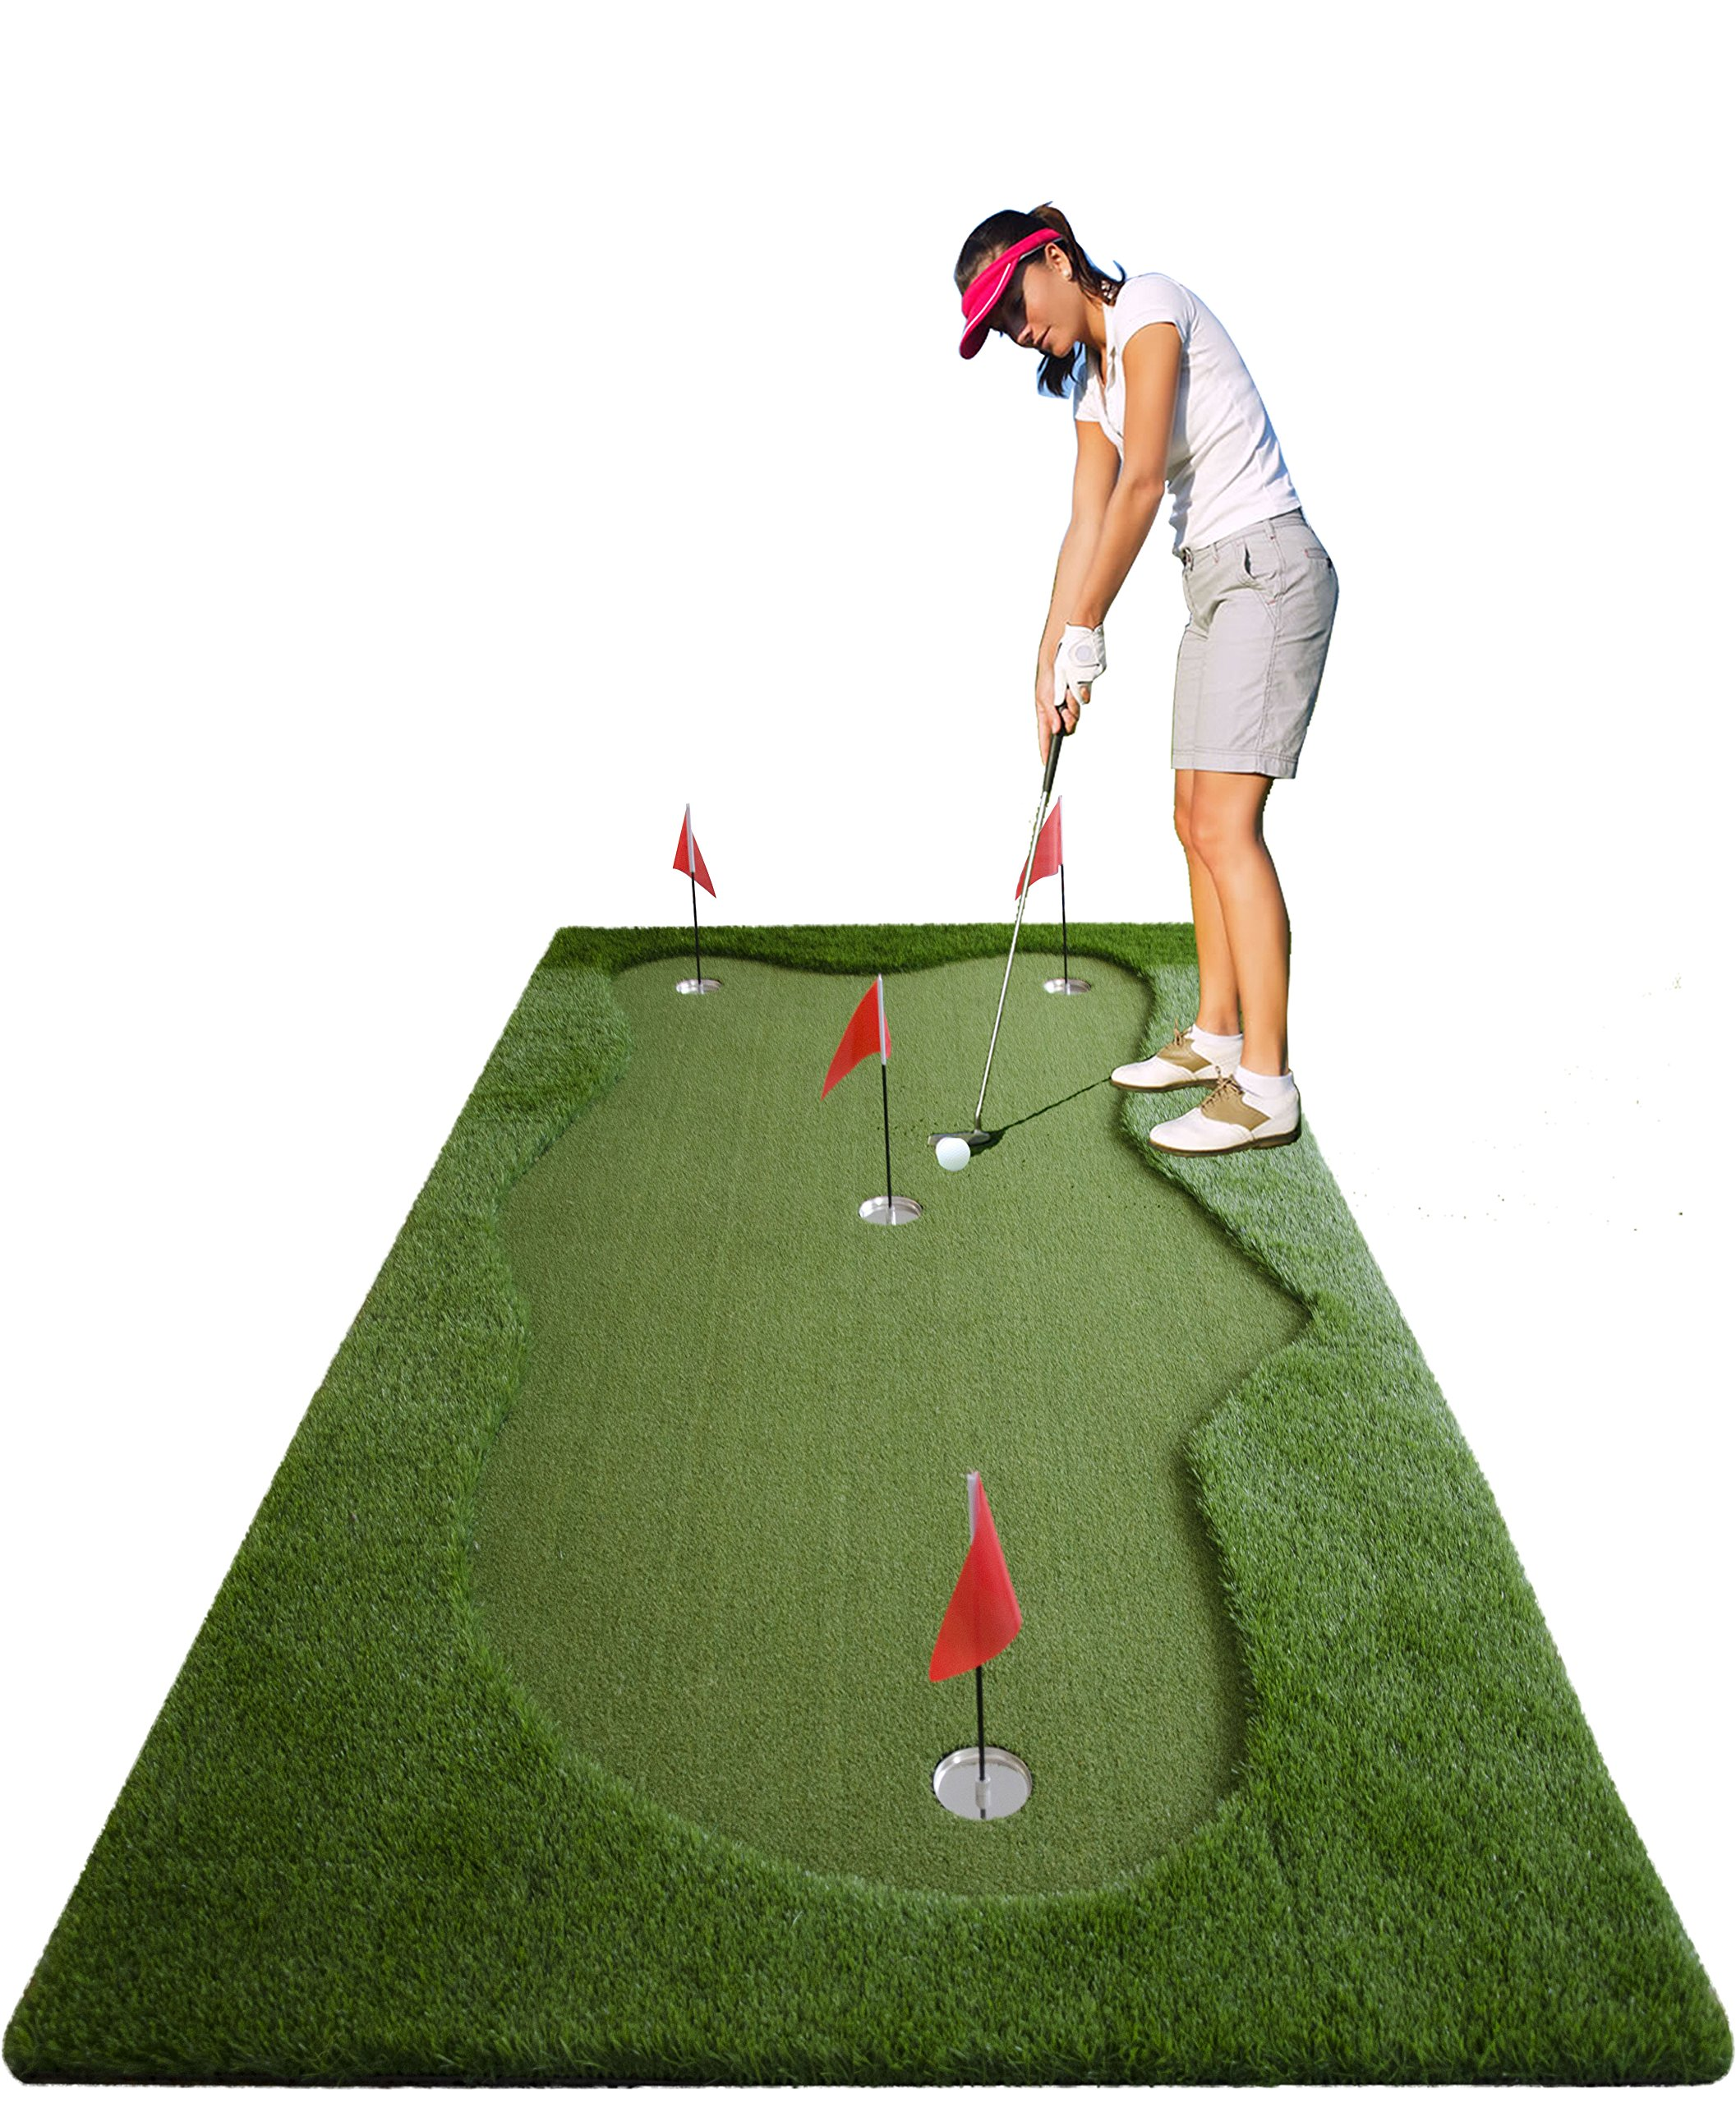 77tech Golf Putting Green System Professional Practice Long Indoor/Outdoor Challenging Putter Made of Waterproof Rubber Base Golf Simulator Training Mat Aid Equipment (5'x10' upgrade2)